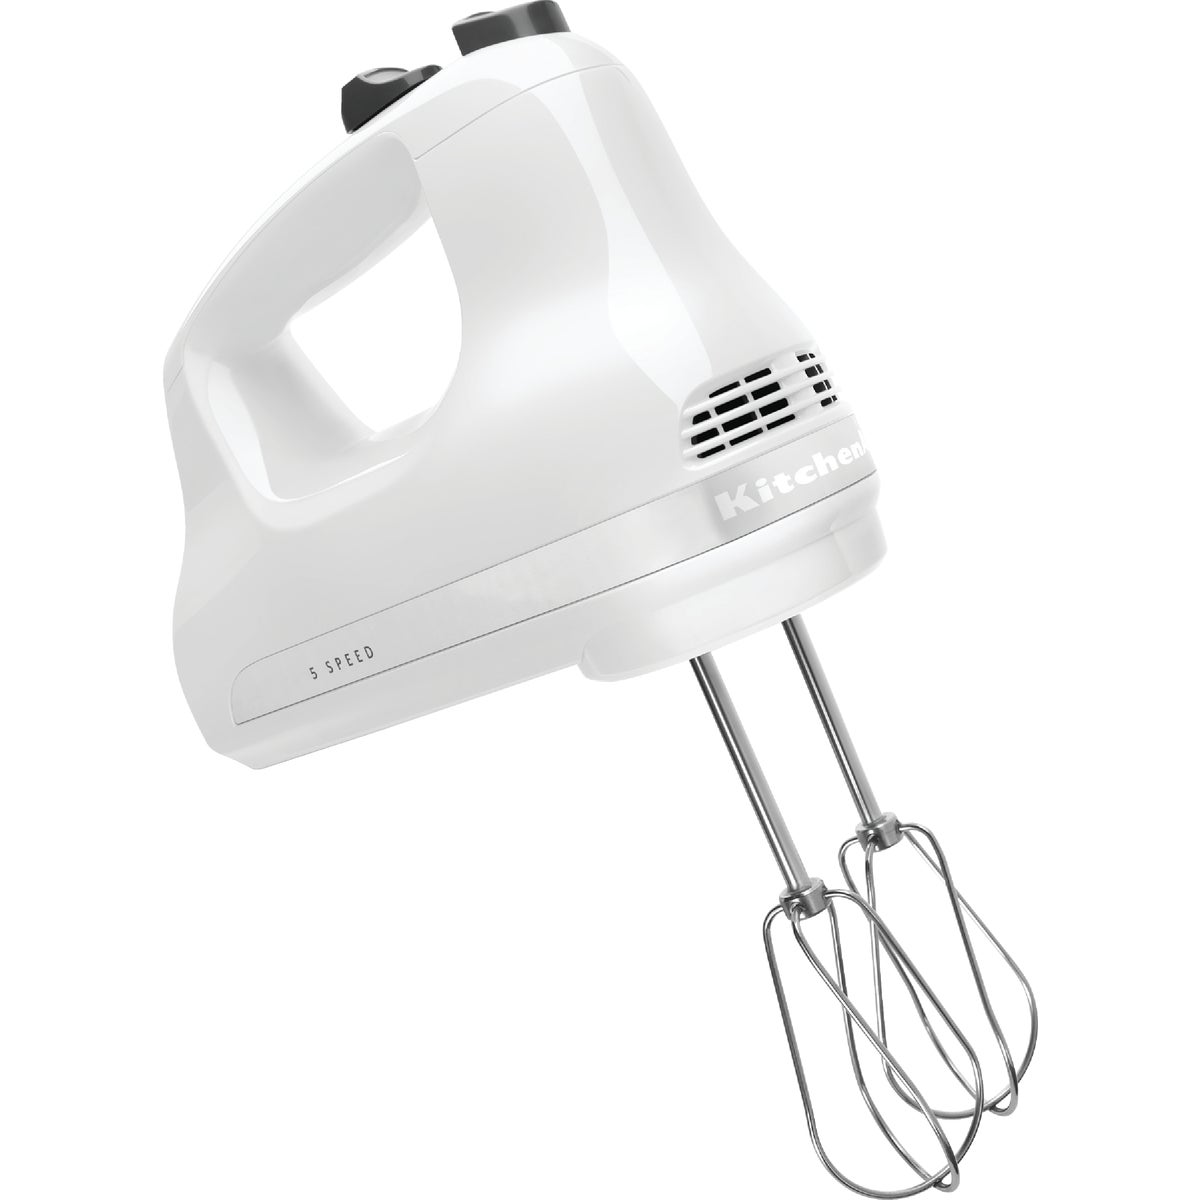 WHT 5-SPEED HAND MIXER - KHM512WH by Kitchenaid Inc